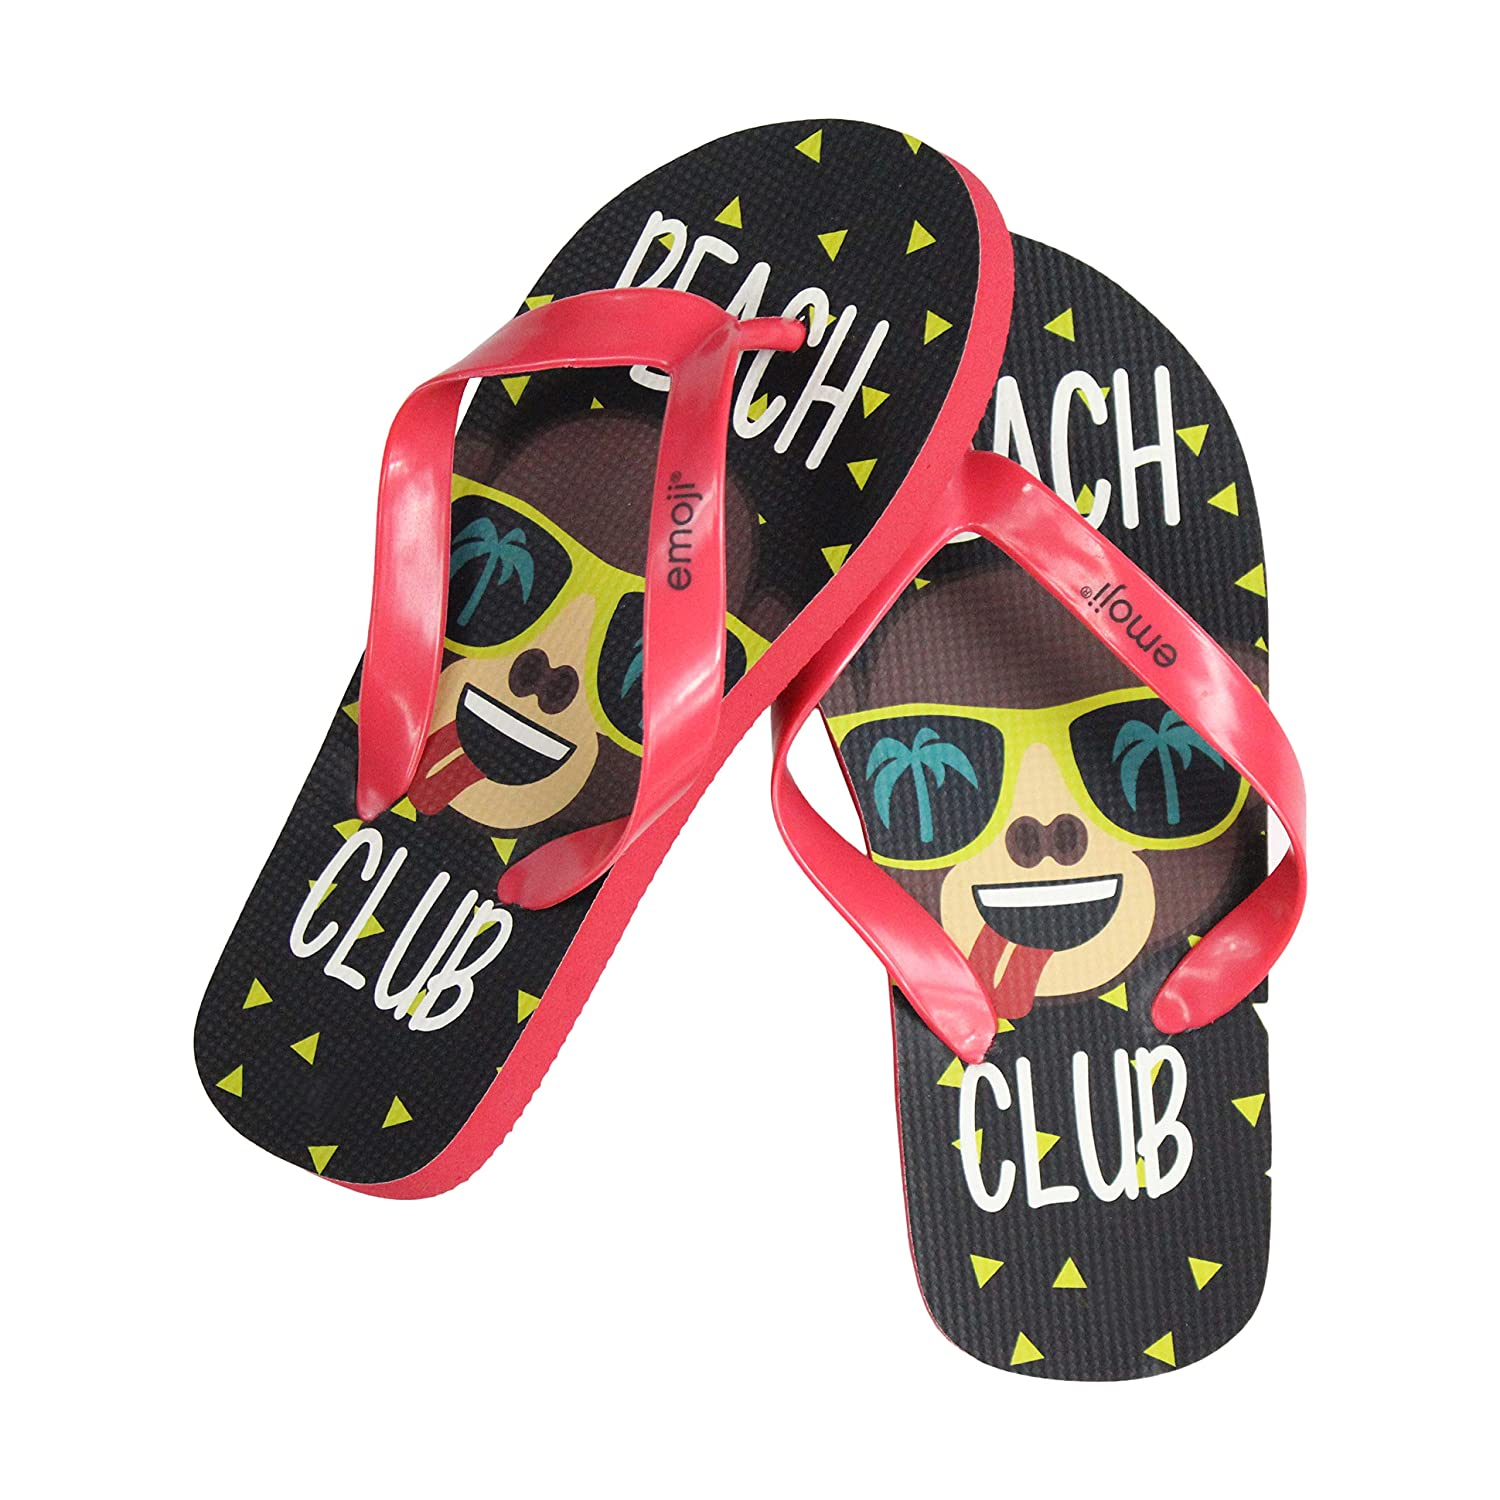 Kids Smiley Summer Sandals Thong Style Beach Shoes emoji Print Summer Flip Flops